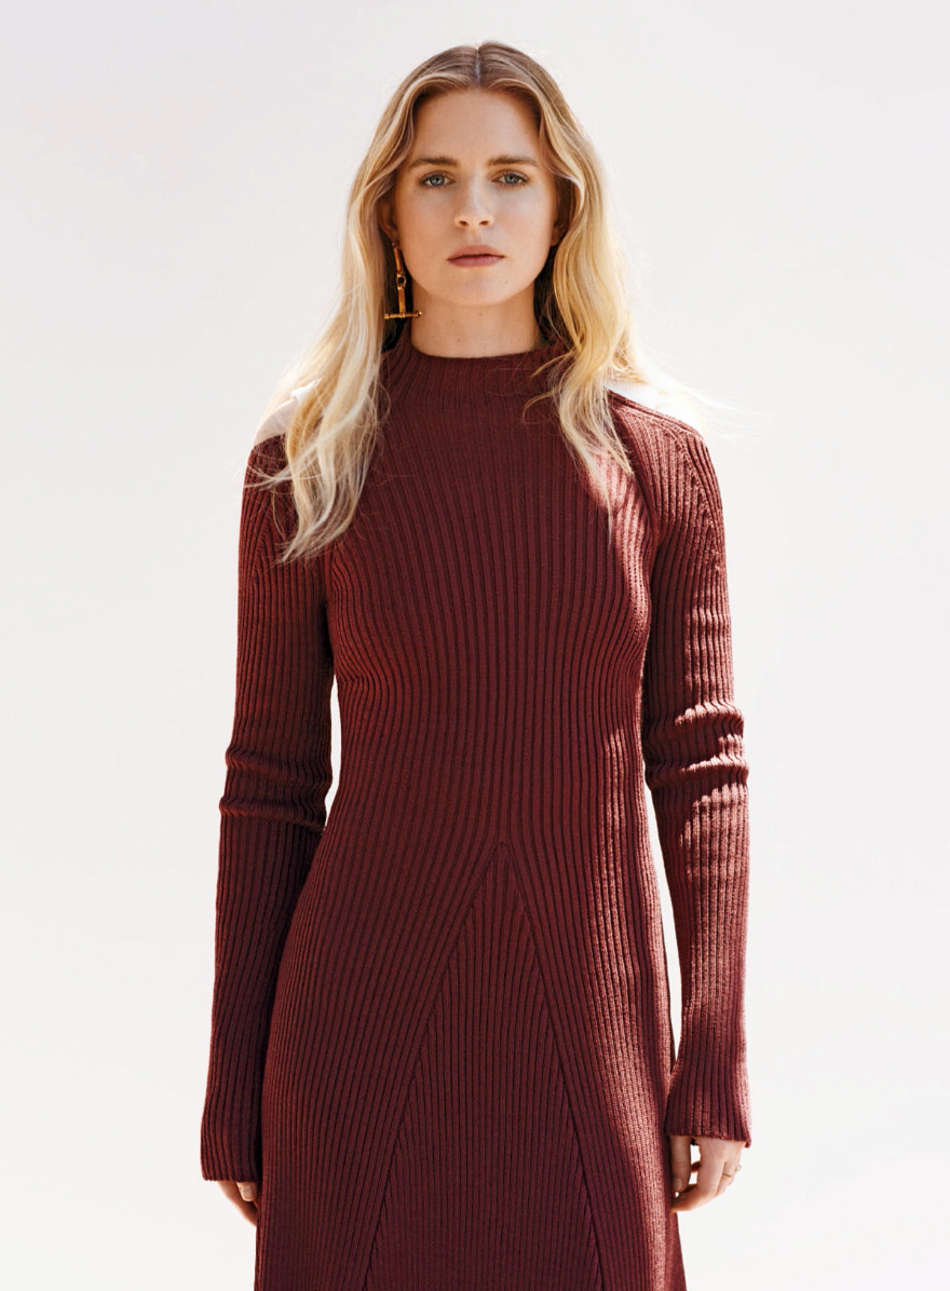 Brit Marling InStyle Photoshoot